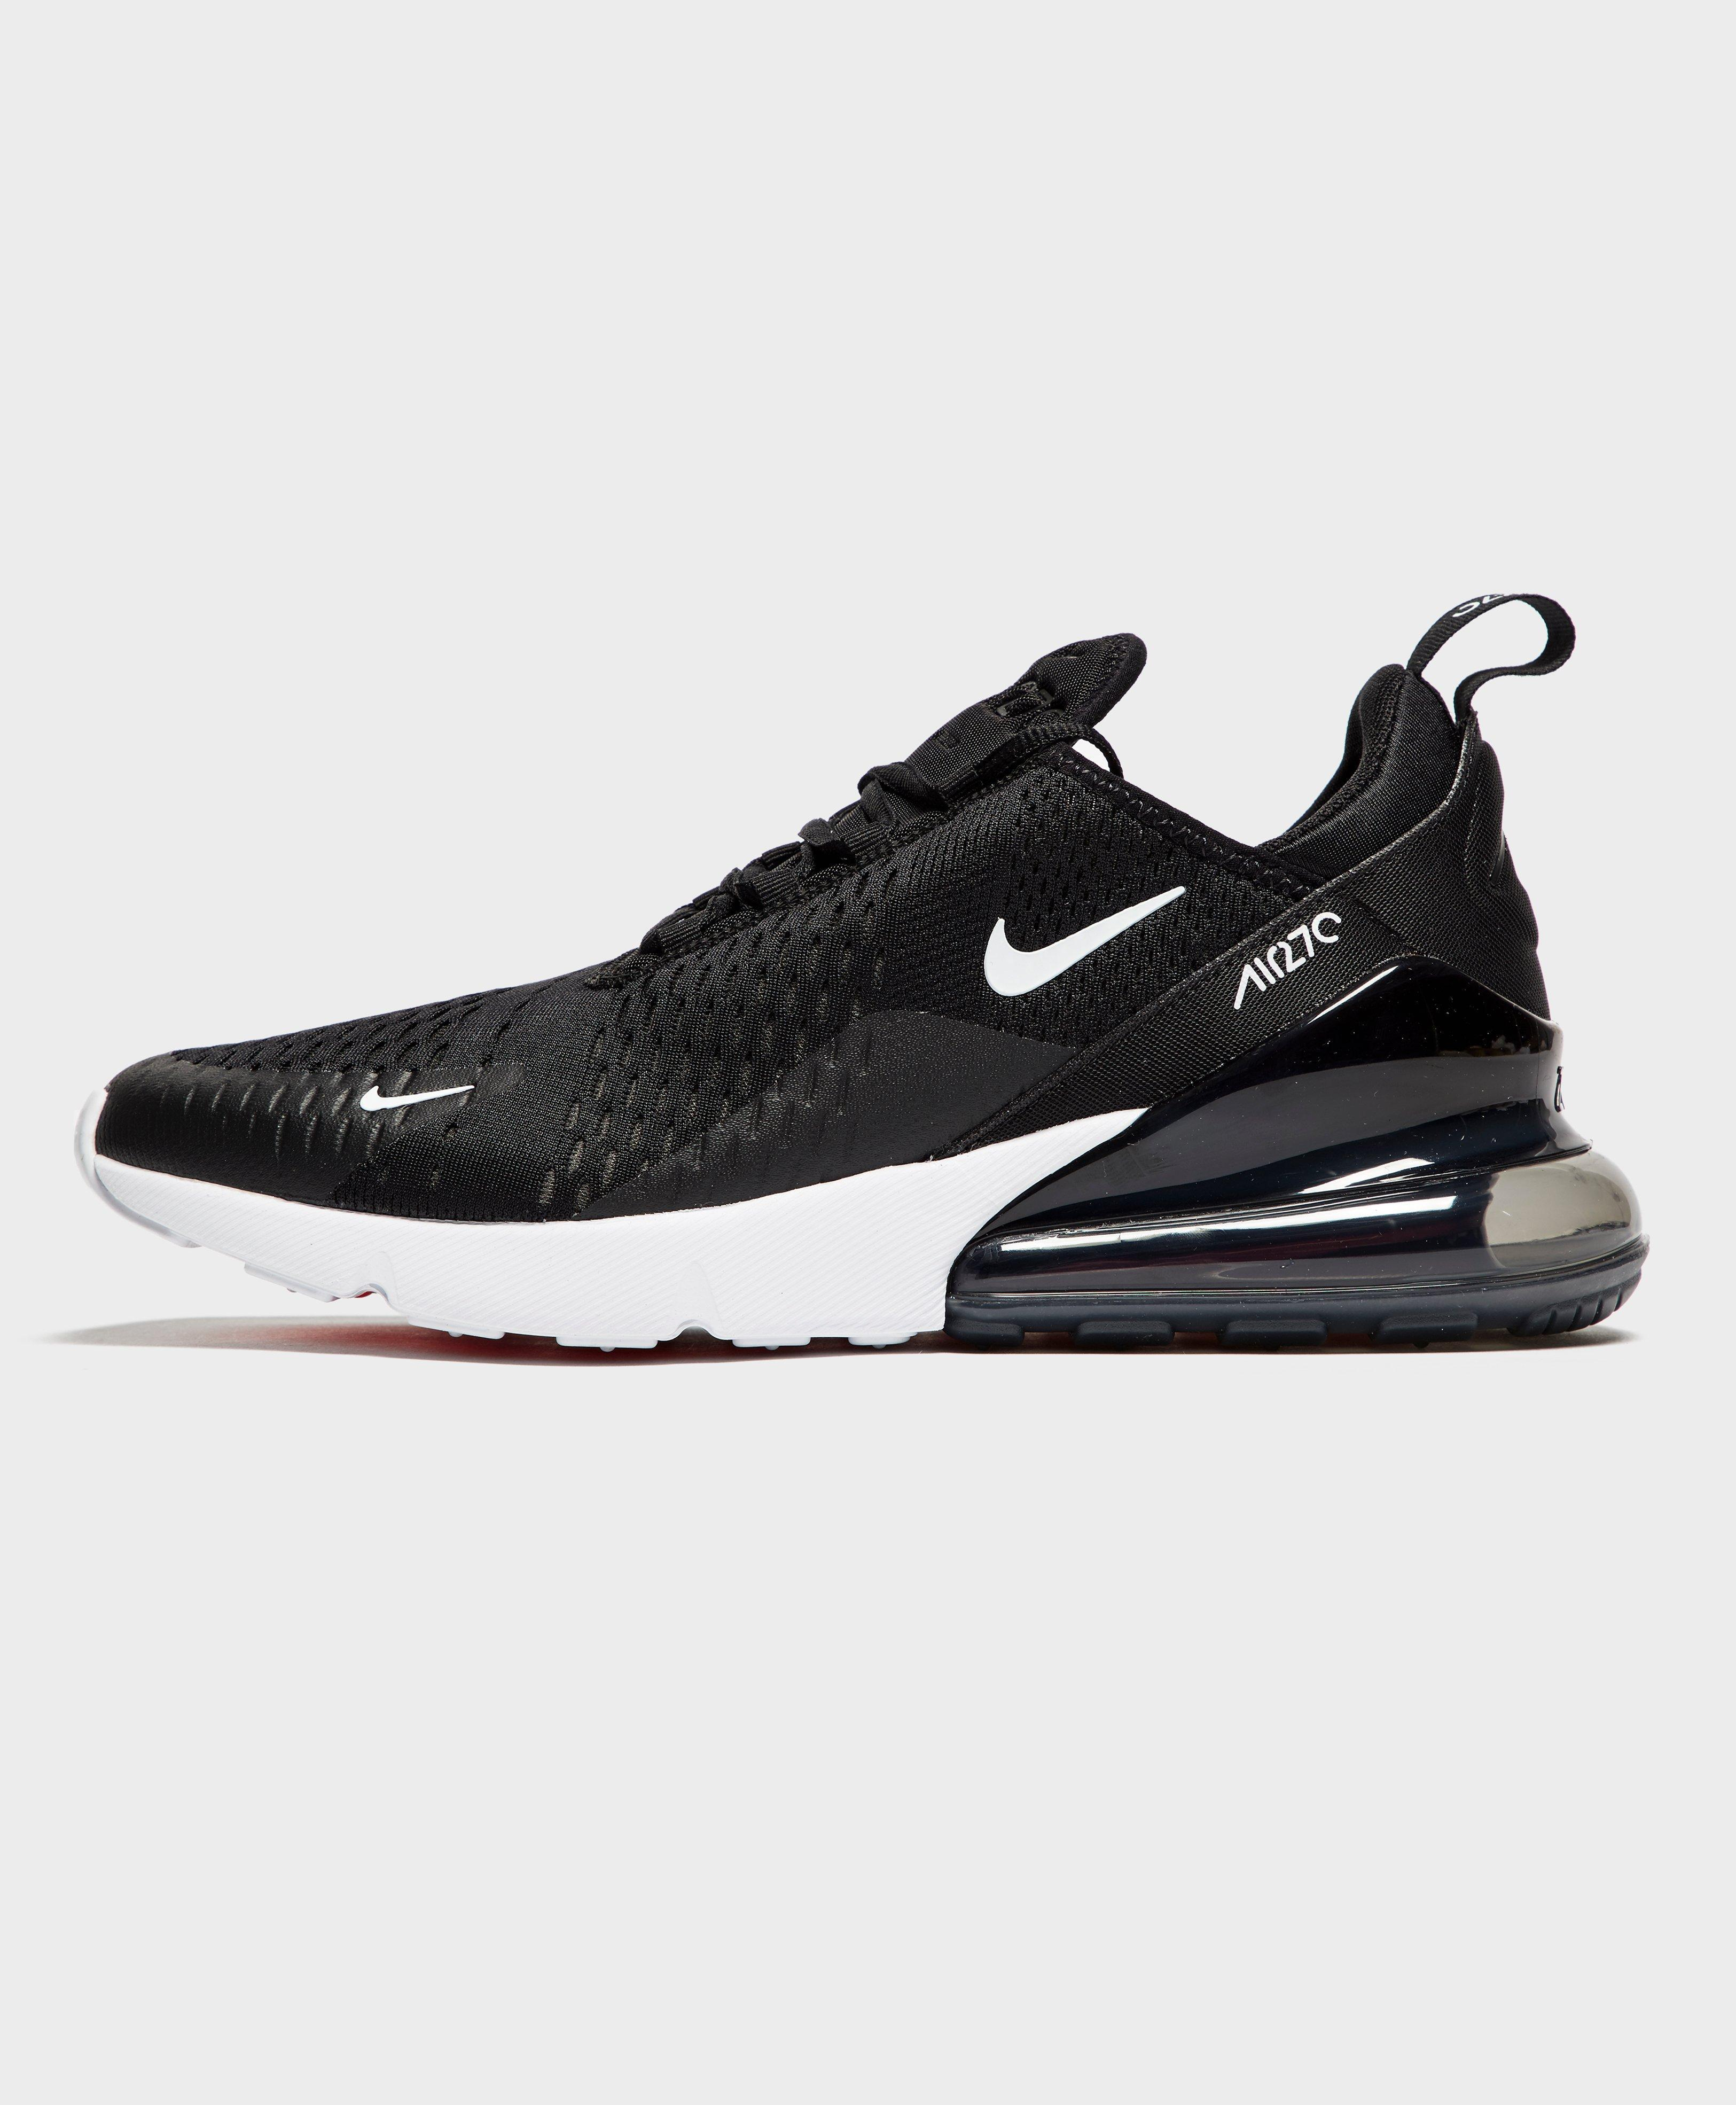 5afb1cad3f07d Lyst - Nike Air Max 270 in Black for Men